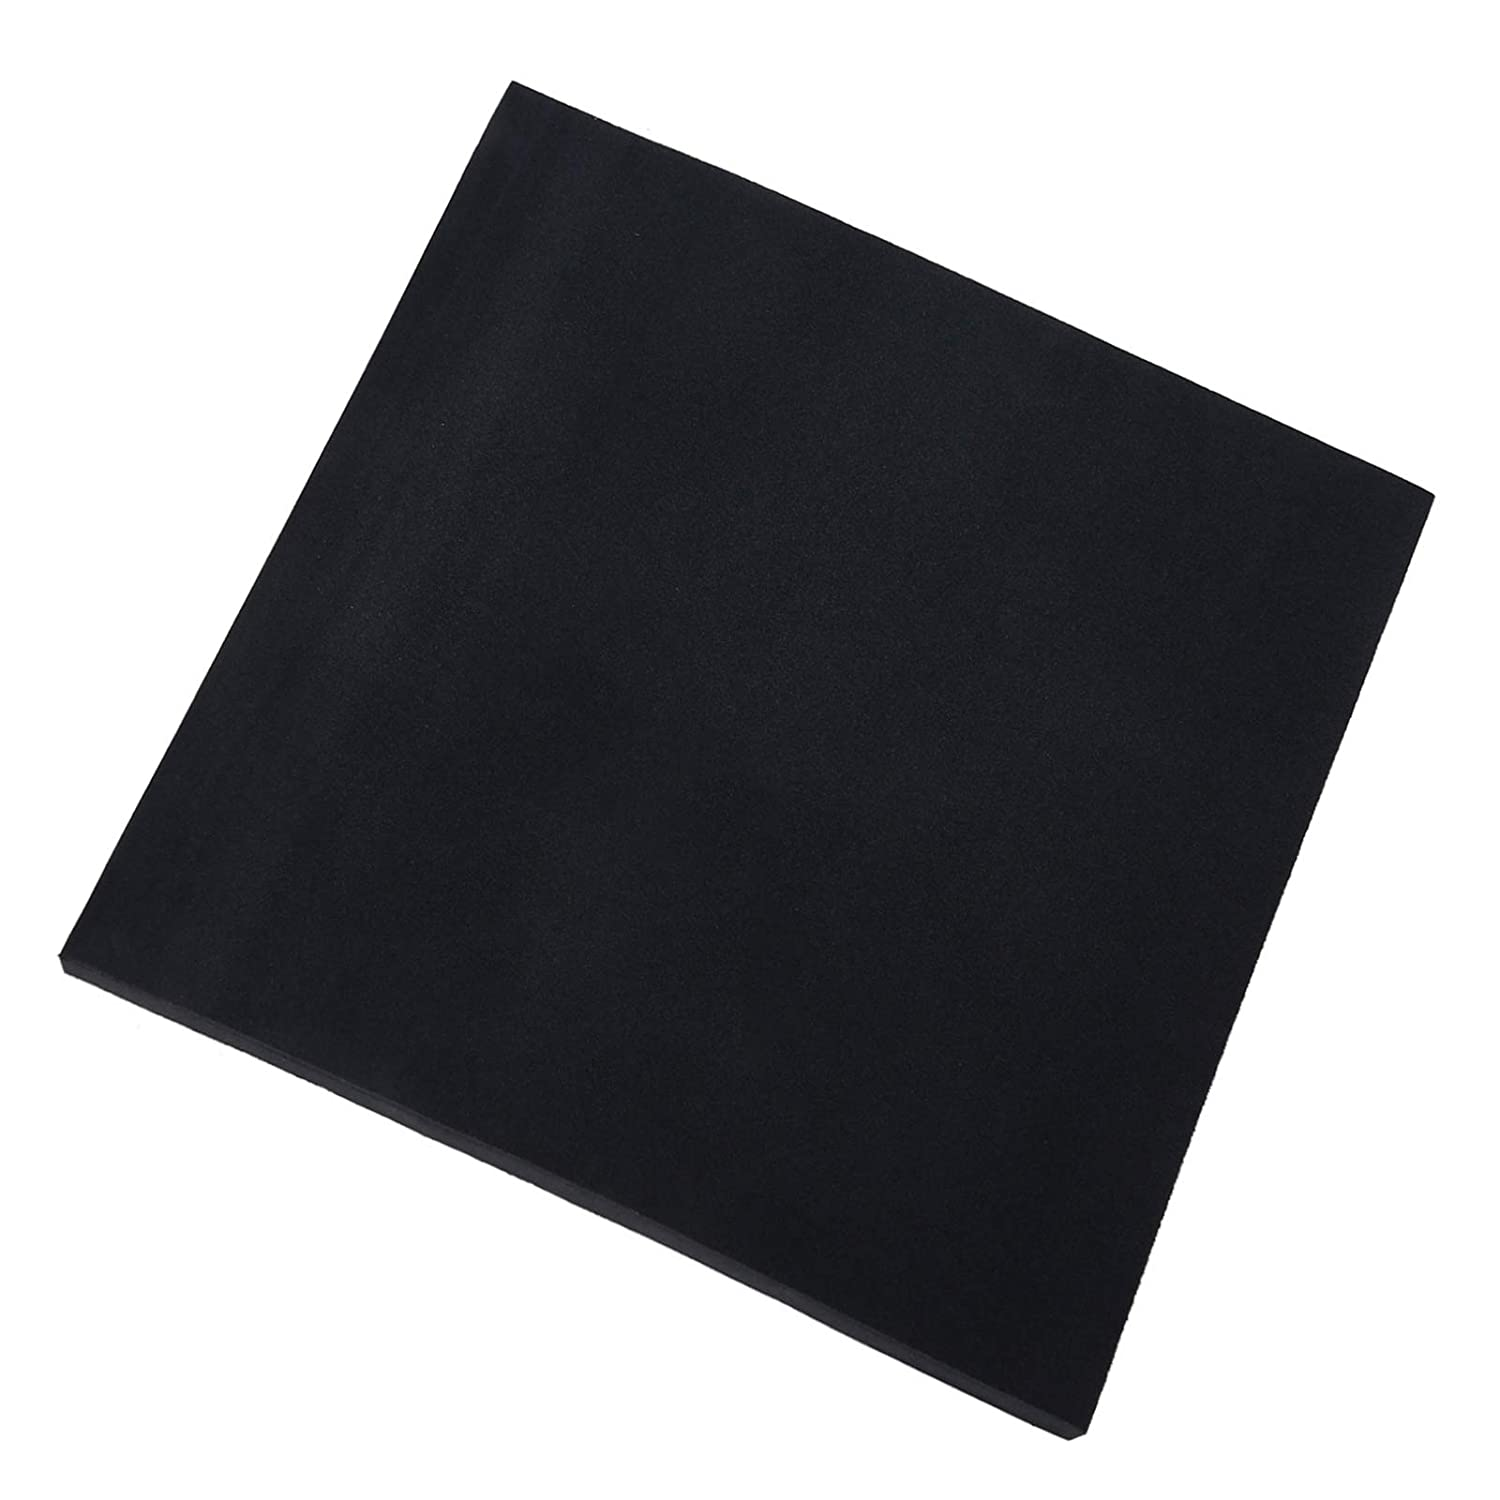 Silicone Rubber Sheet,Heary Duty,Grade 60A,12x12-Inch by 1/8